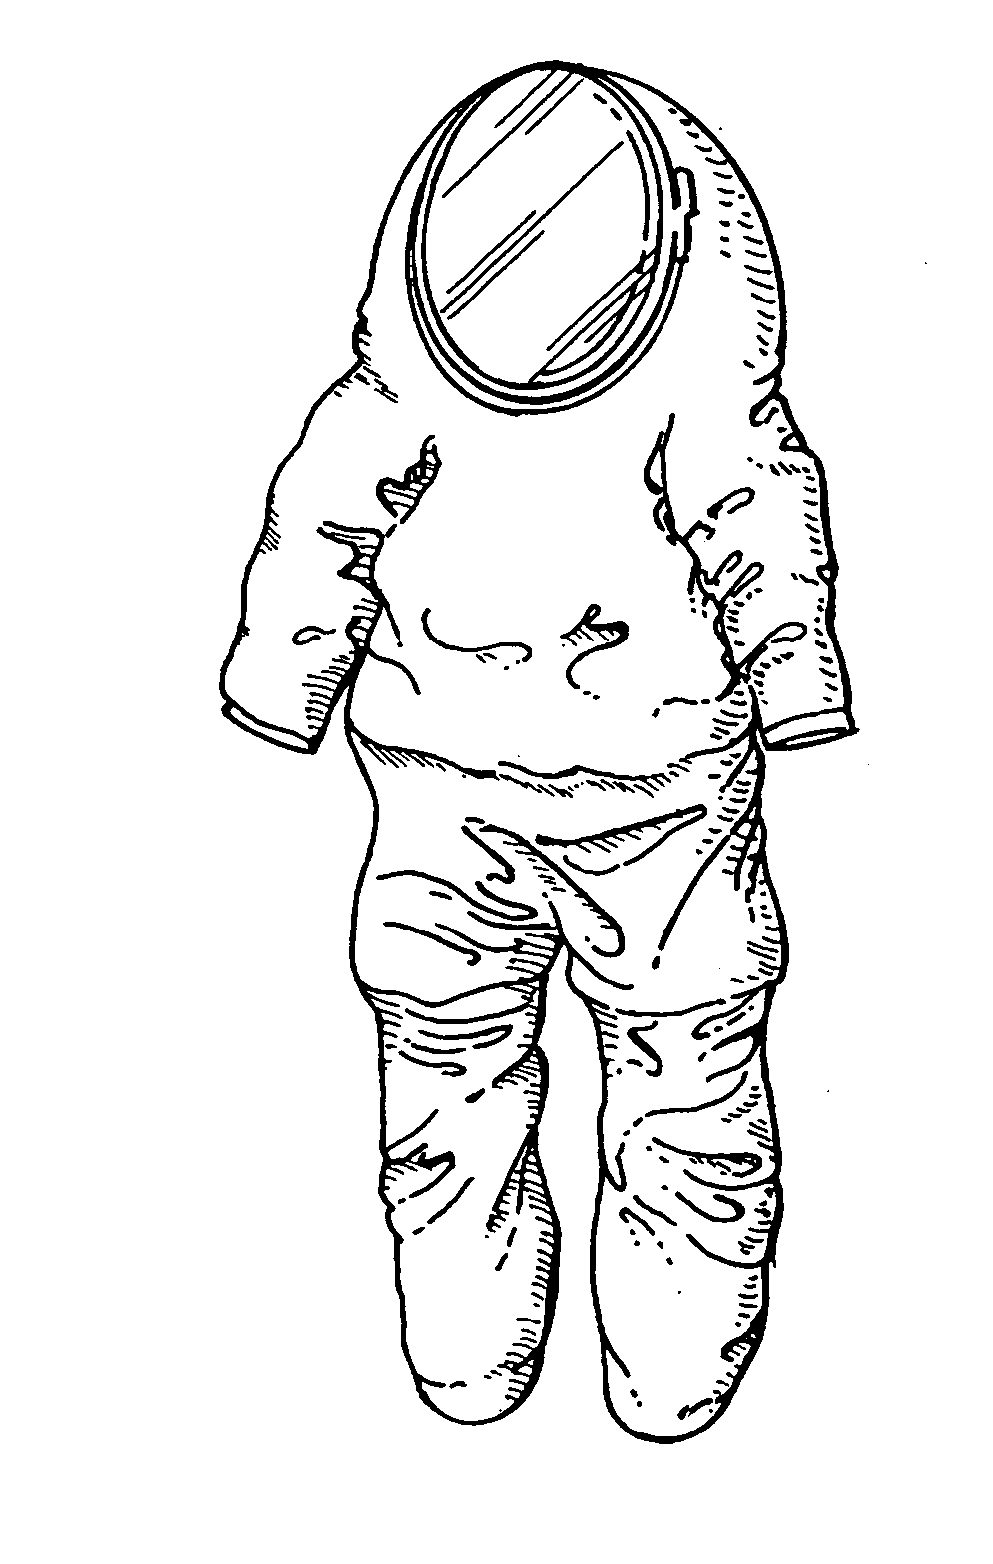 how to draw a space suit space astronautas dibujos tatuaje de astronauta y a space draw how to suit